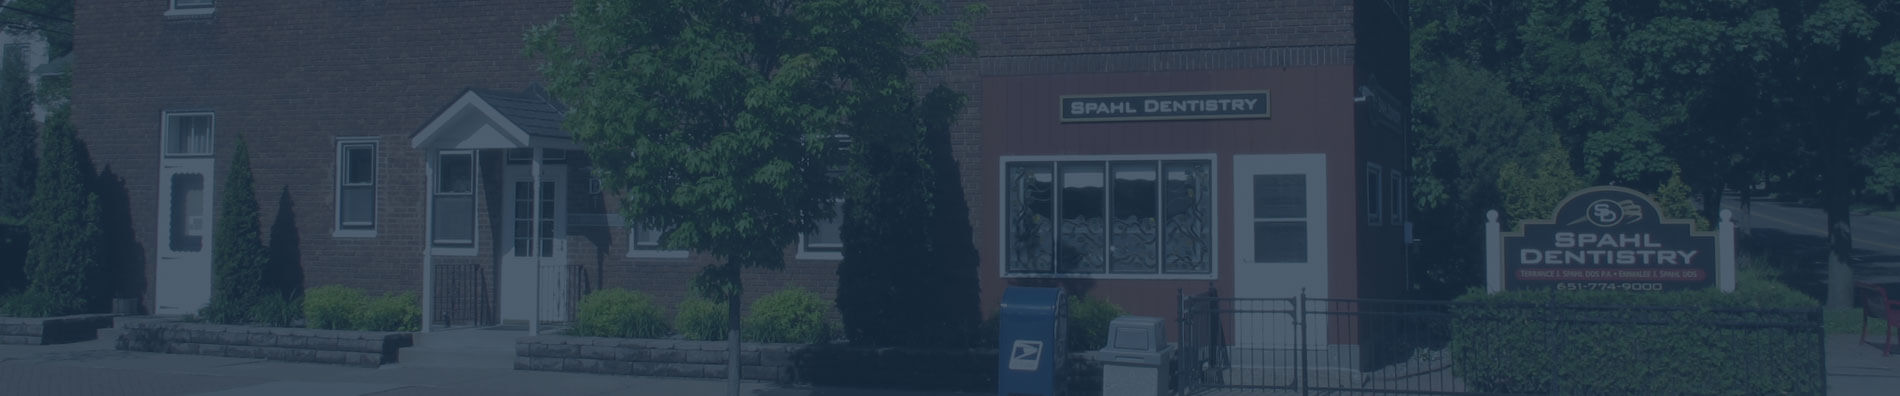 Image of Spahl Dentistry office in St. Paul, MN